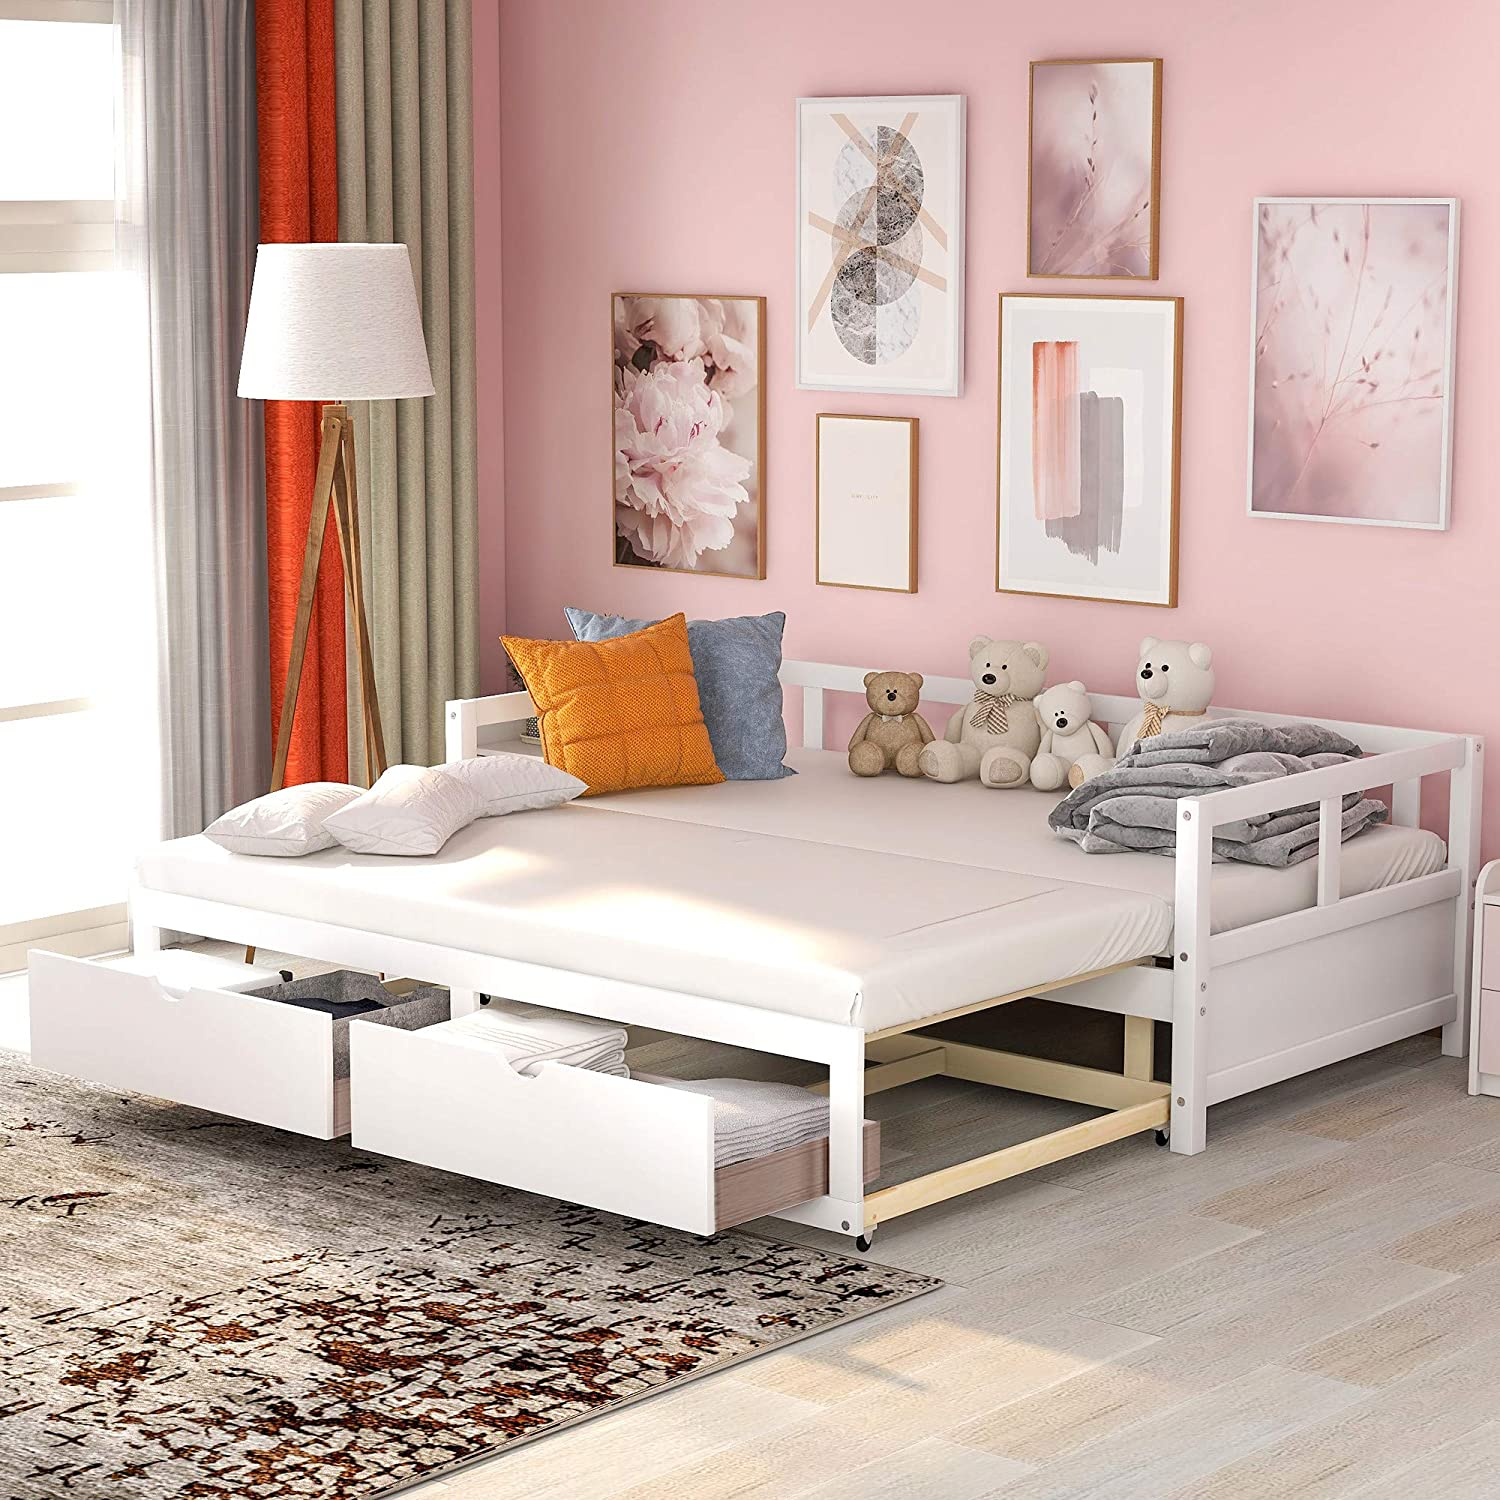 - Amazon.com: Wooden Daybed With Trundle Bed And Two Storage Drawers,  Extendable Bed Daybed,Sofa Bed For Bedroom Living Room,No Box Spring  Required (White): Kitchen & Dining